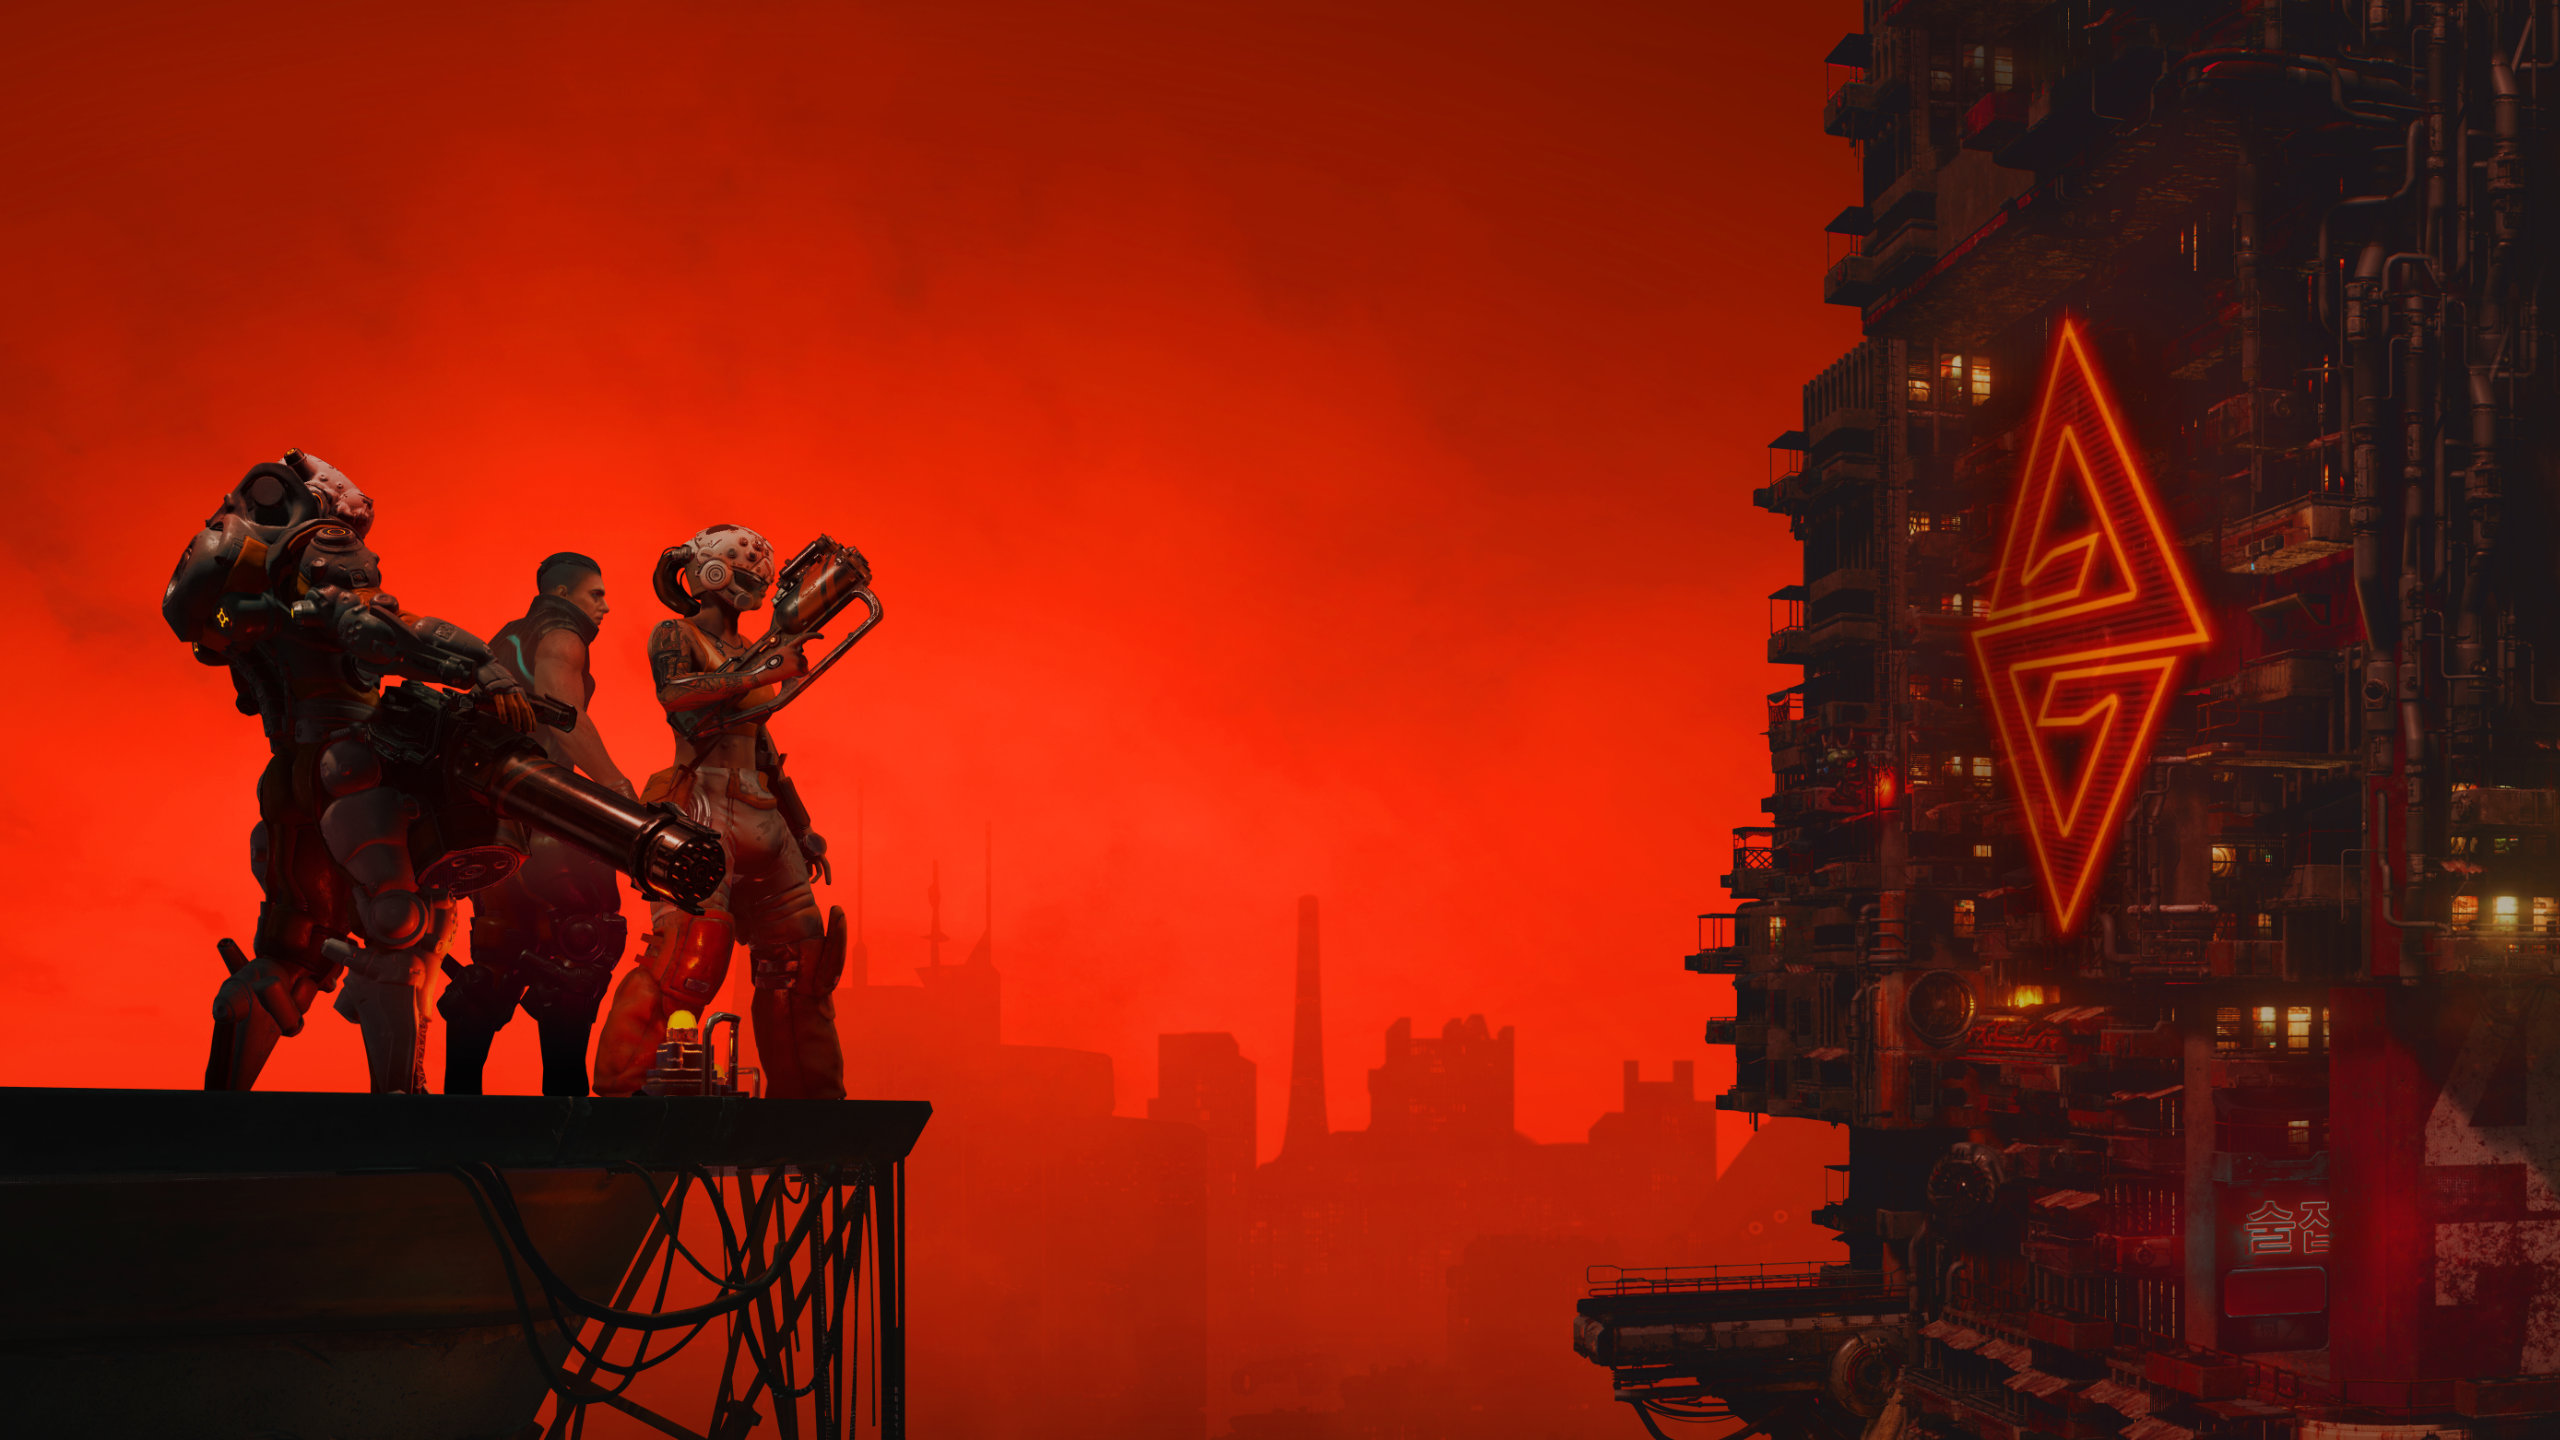 The cast of The Ascent stand on top of a skyscraper looking over an entire city against a red sky.